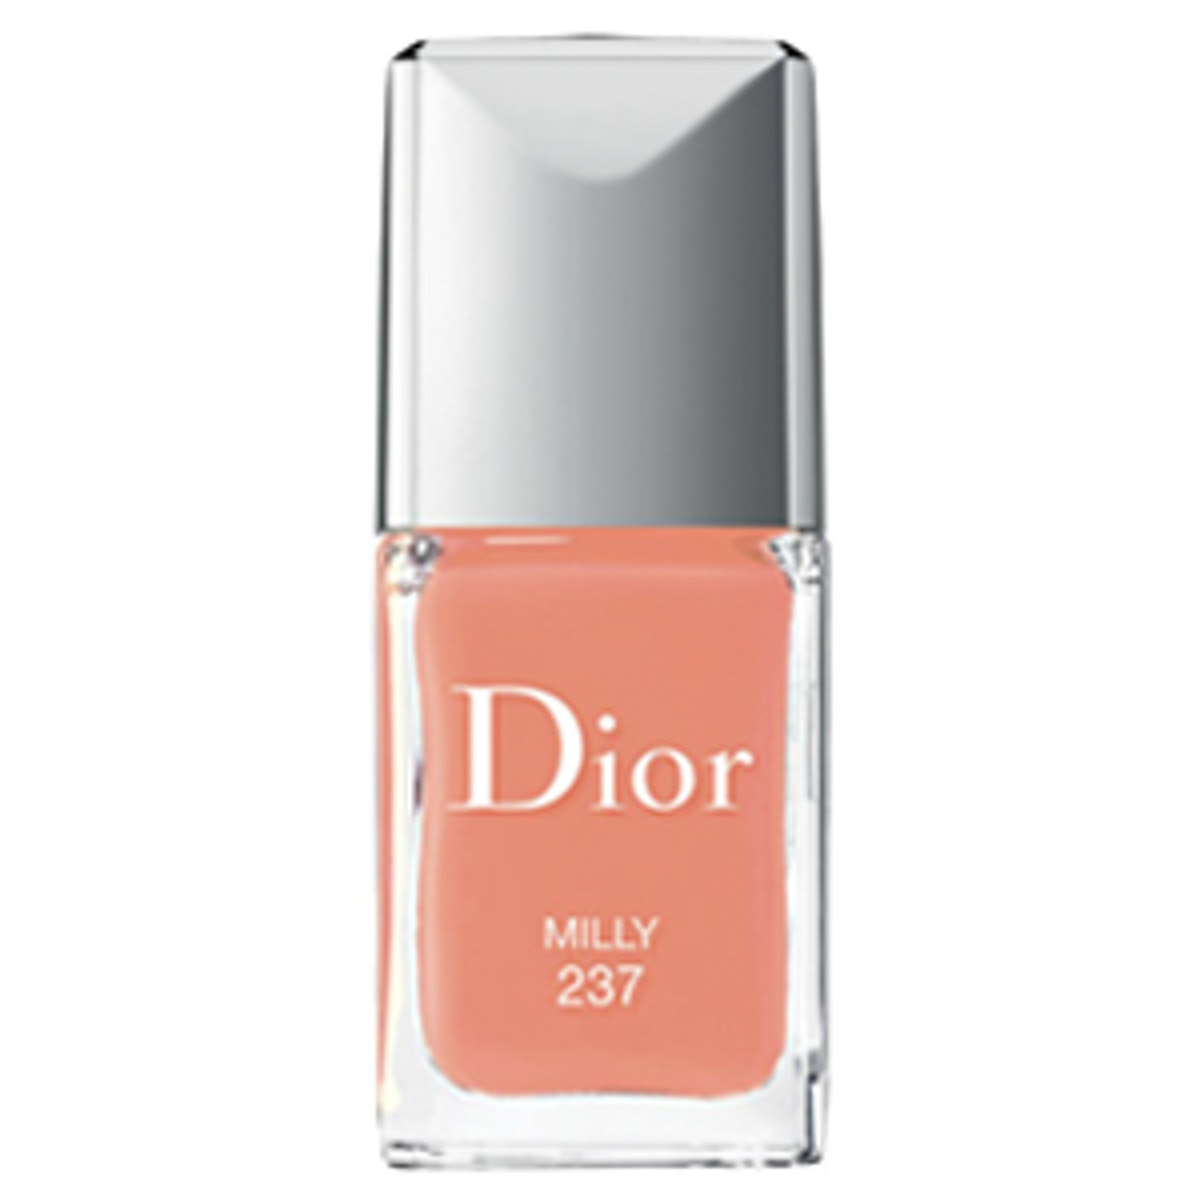 Vernis Gel Shine Nail Lacquer in Milly